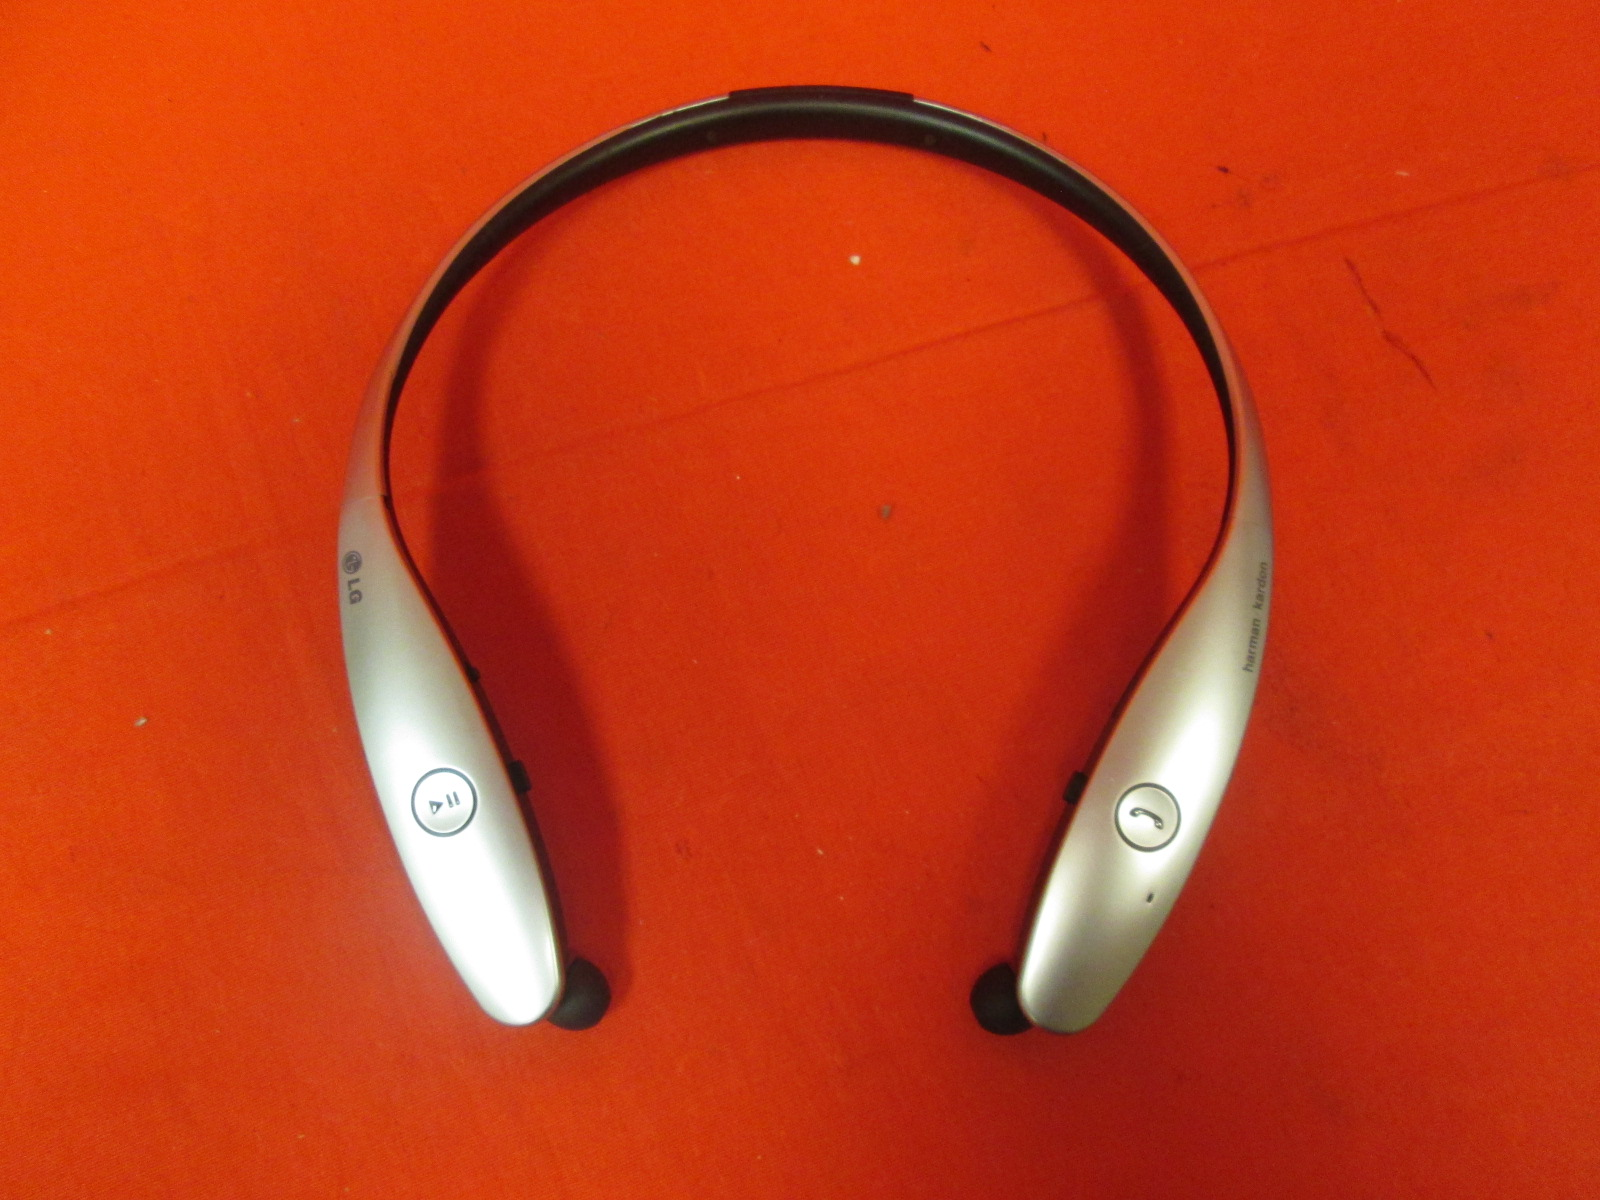 LG Tone Infinim HBS-900 Wireless Stereo Headset Silver